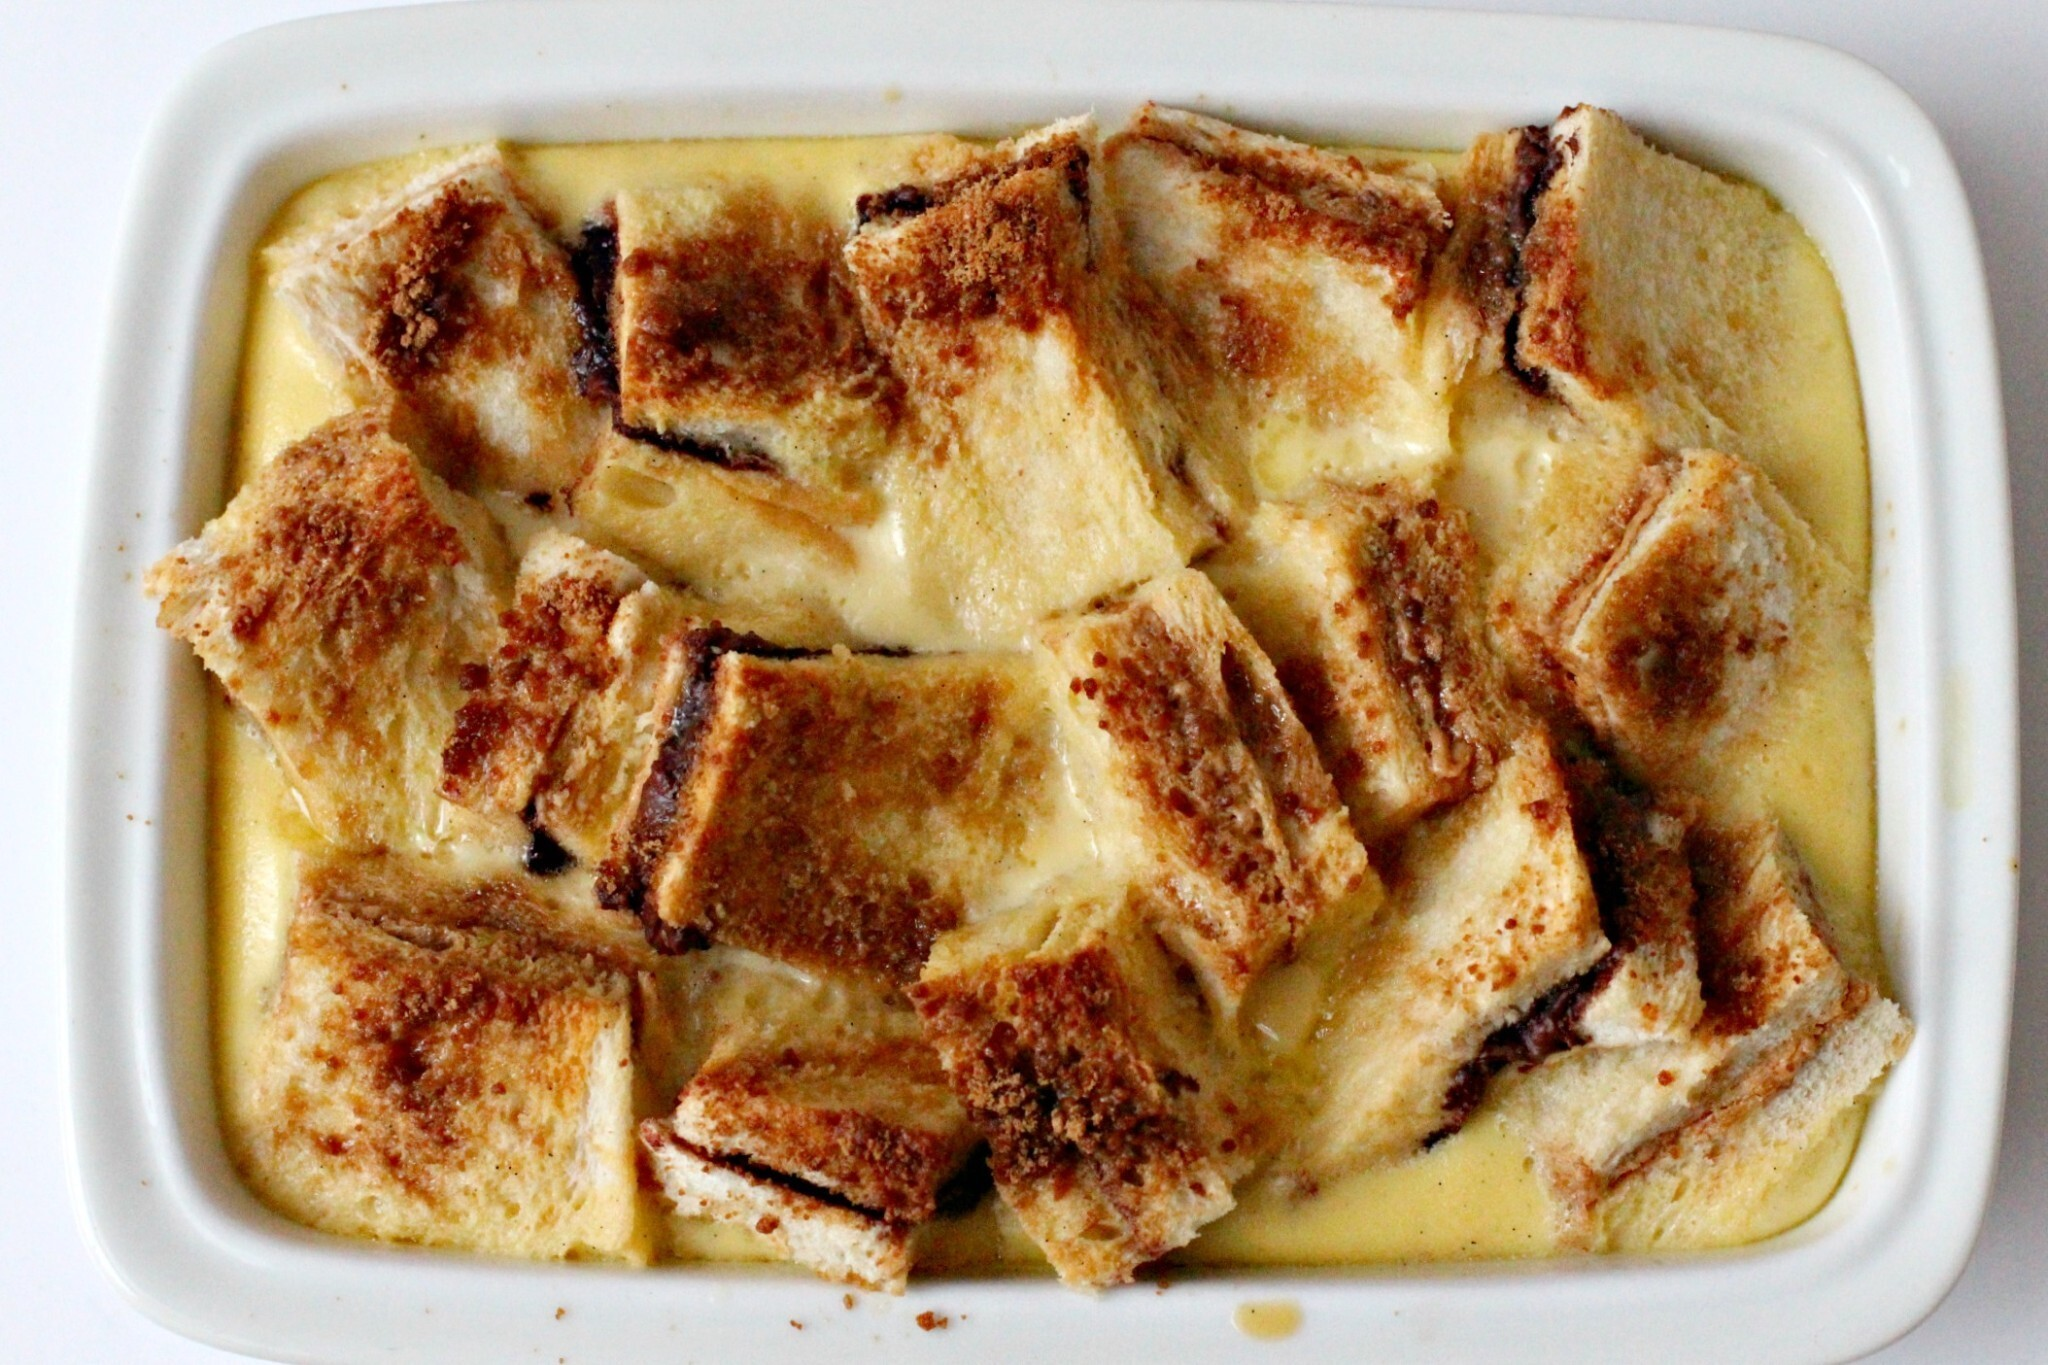 PB & N (for Nutella) Bread and Butter Pudding